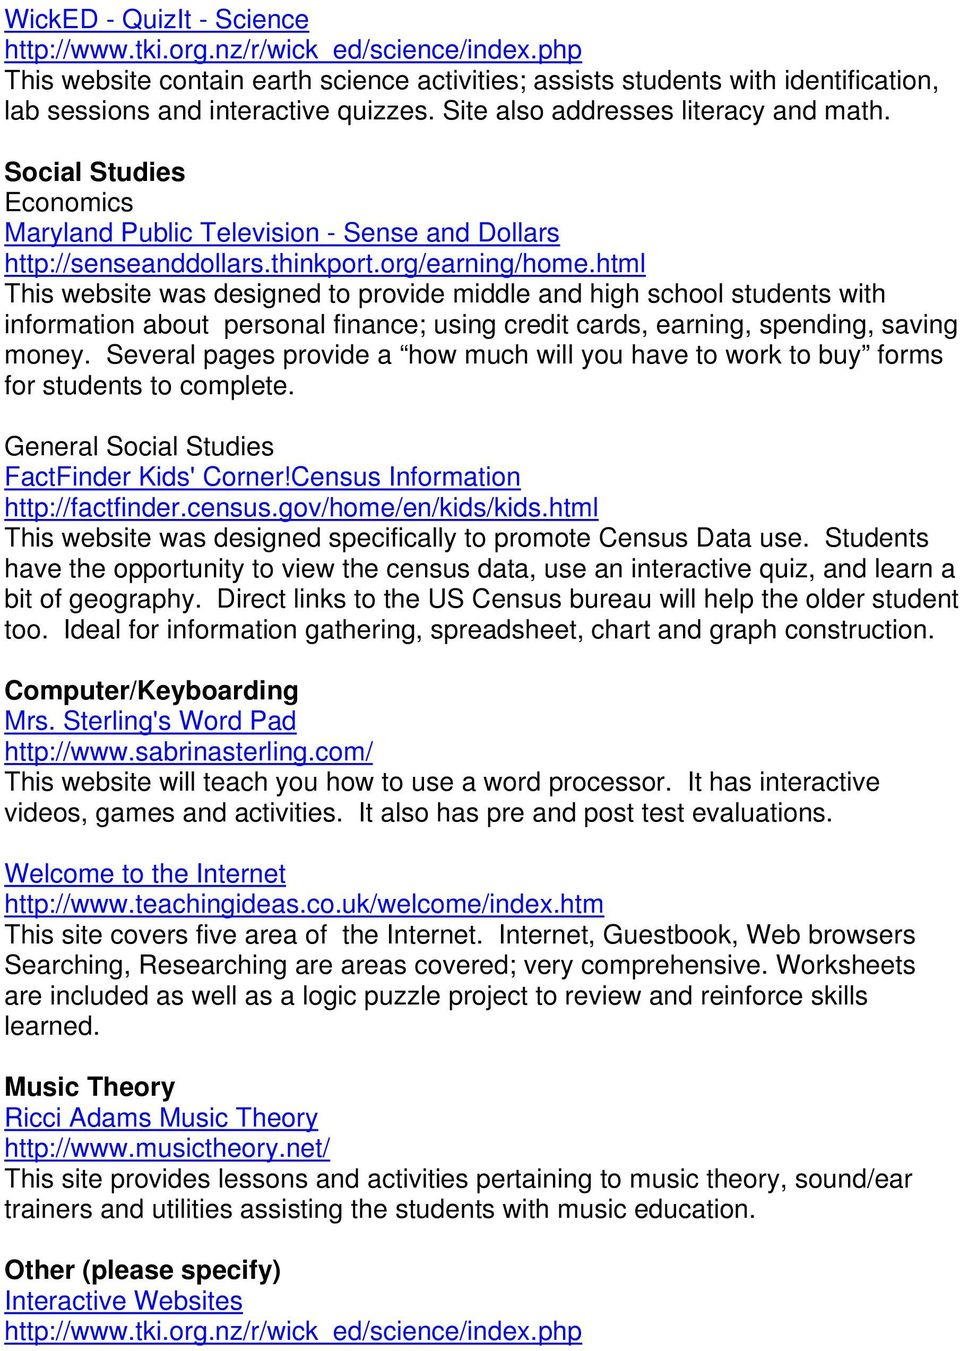 sentence structure worksheets middle – devopscr co further Middle Science Cloze Worksheet   Reproductive System   TpT in addition Spelling Words Suffi  er est Worksheet for 3rd   4th Grade together with  besides Middle Interactive Websites   PDF besides Argumentative Essay Lesson Plans For High   Mistyhamel further middle math review worksheets – xuger info further Fun Math Review Worksheets   Formatted Templates Ex le as well New Year's Resolution for Kids furthermore Cirference and Area of Circle Worksheets moreover 2nd grade phonics worksheets free – r besides Printable Worksheets for Teachers  K 12    TeacherVision together with Middle Reading  prehension Worksheets Free History Graphy likewise Spanish Word Search Bundle  Set 1   Spanish Word Searches moreover 1st Grade Math Summer Review Packet Standards Practice The additionally Rocks And Minerals Grade 4 Worksheets For Middle All Download. on r review worksheet middle